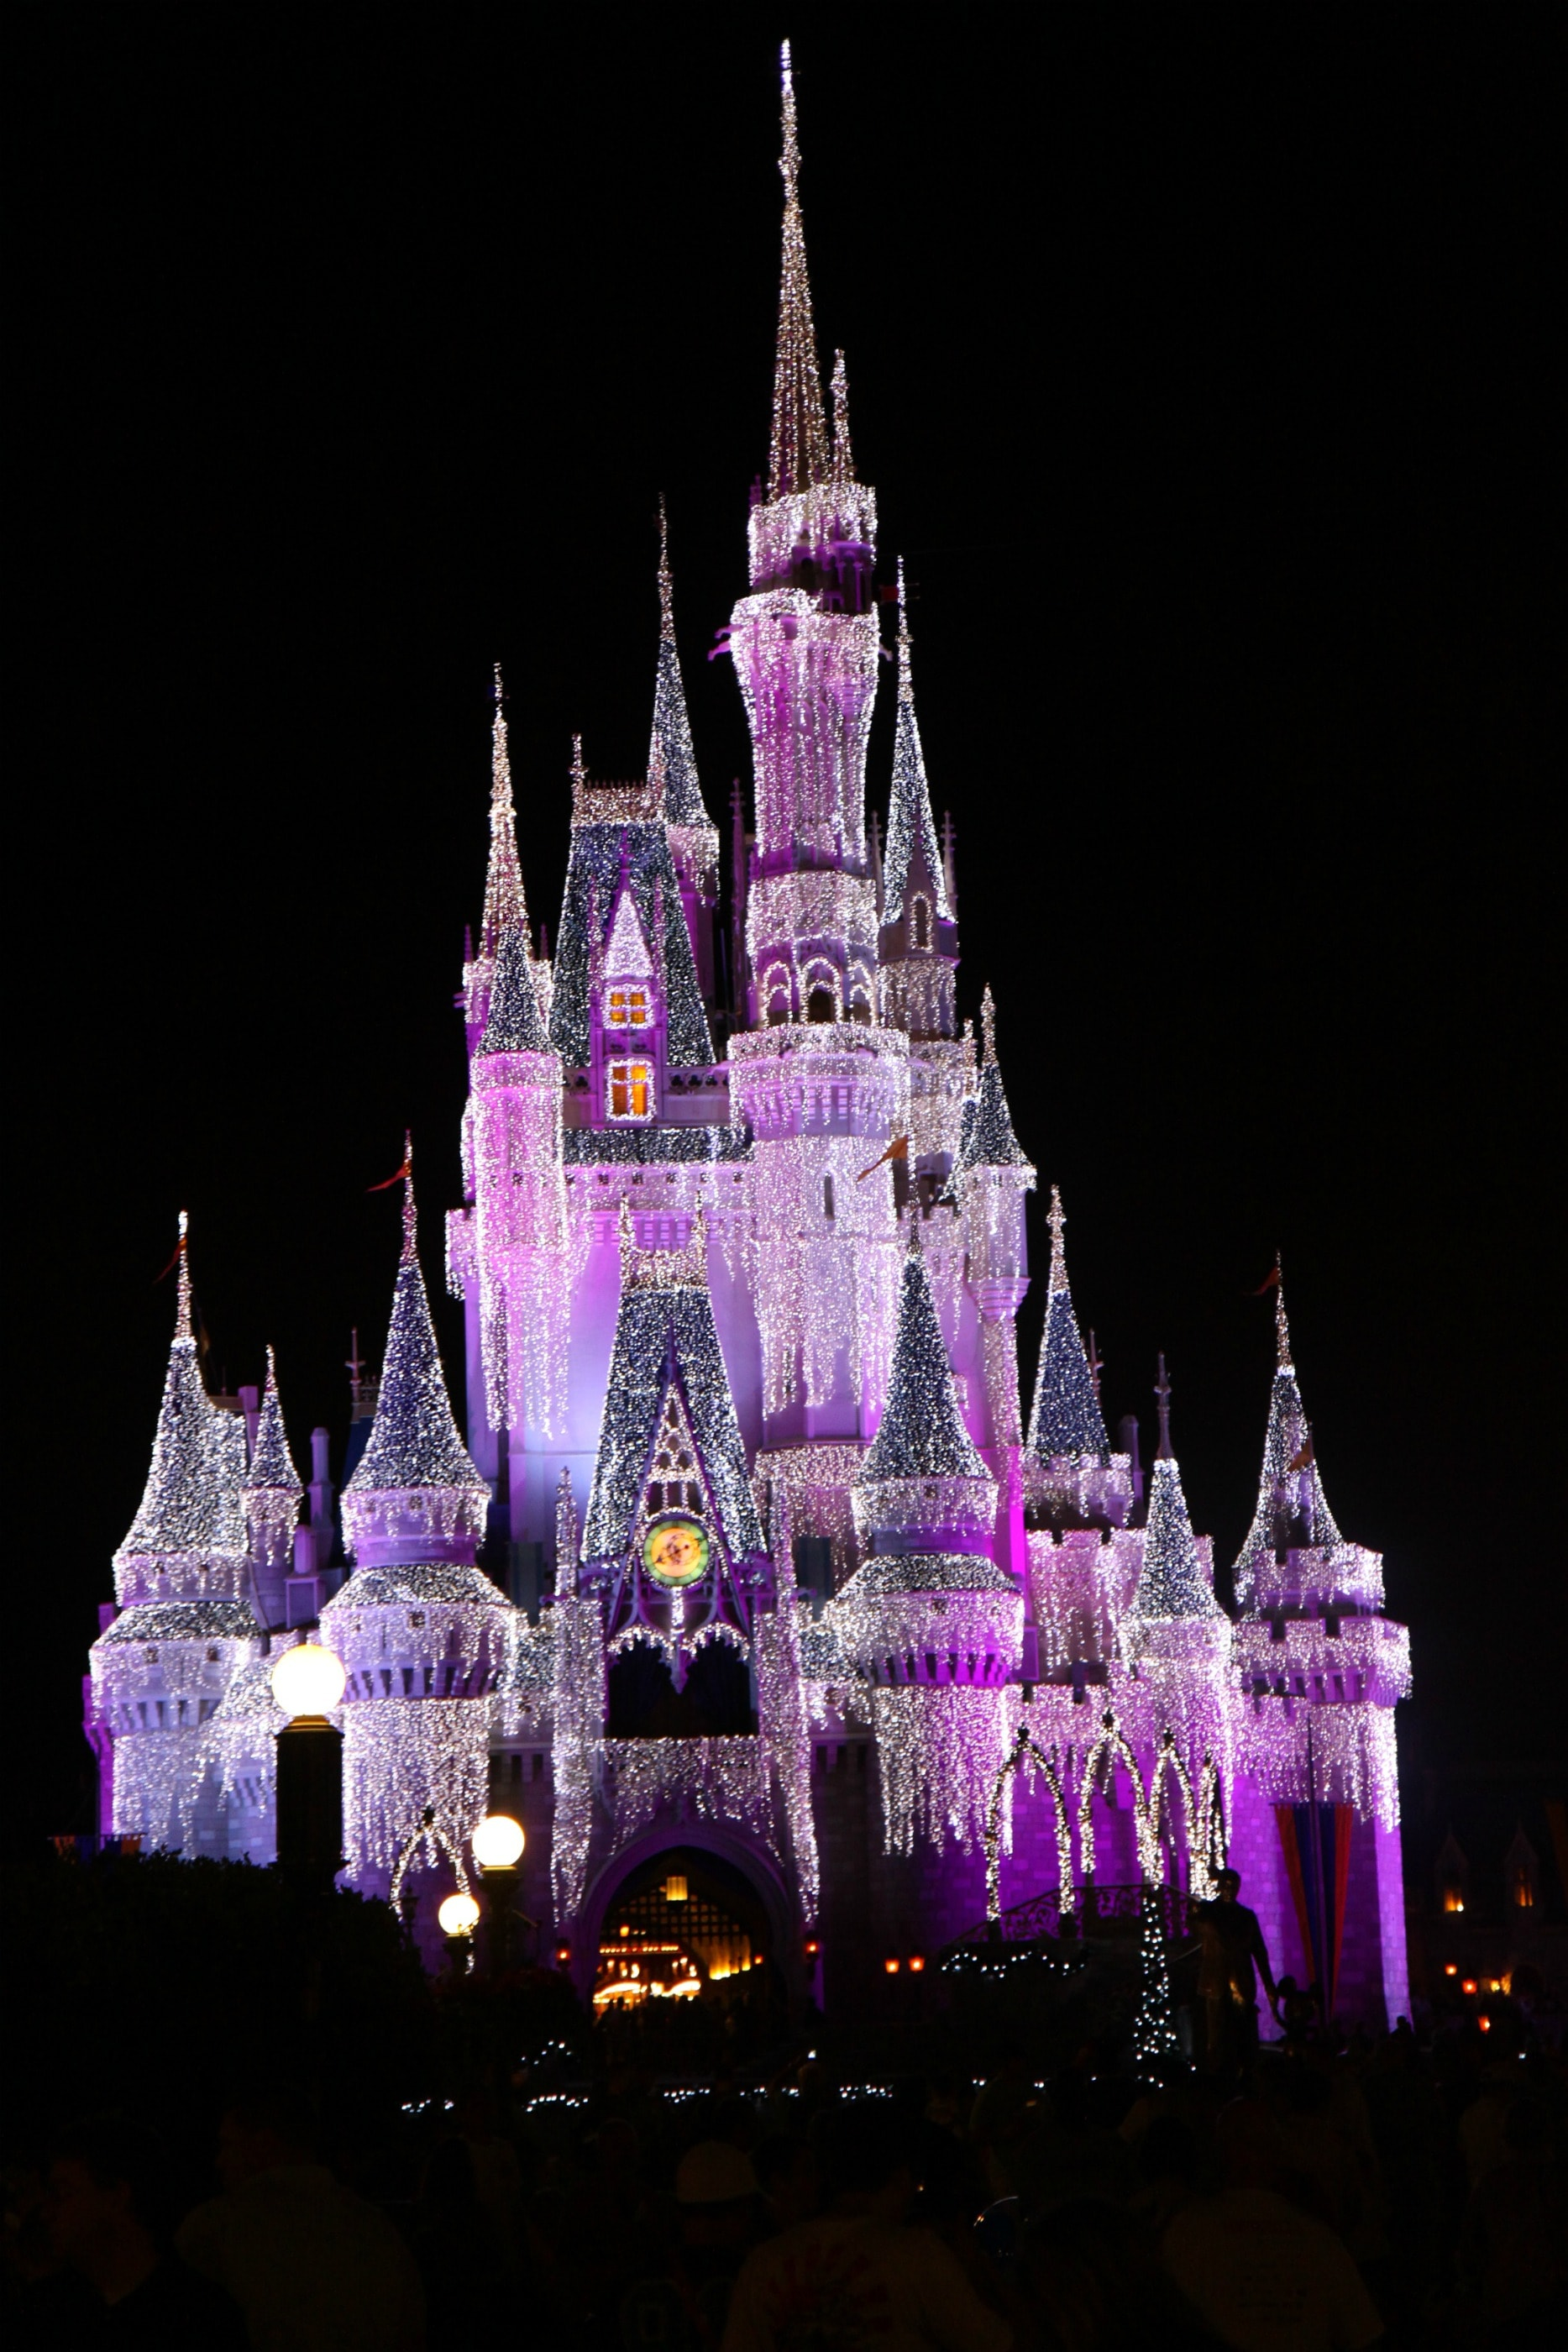 descriptive essay magic kingdom The princess and the magic kingdom: beyond nostalgia  essay and the comments of the reviewers and editor on the essay's earlier drafts their.